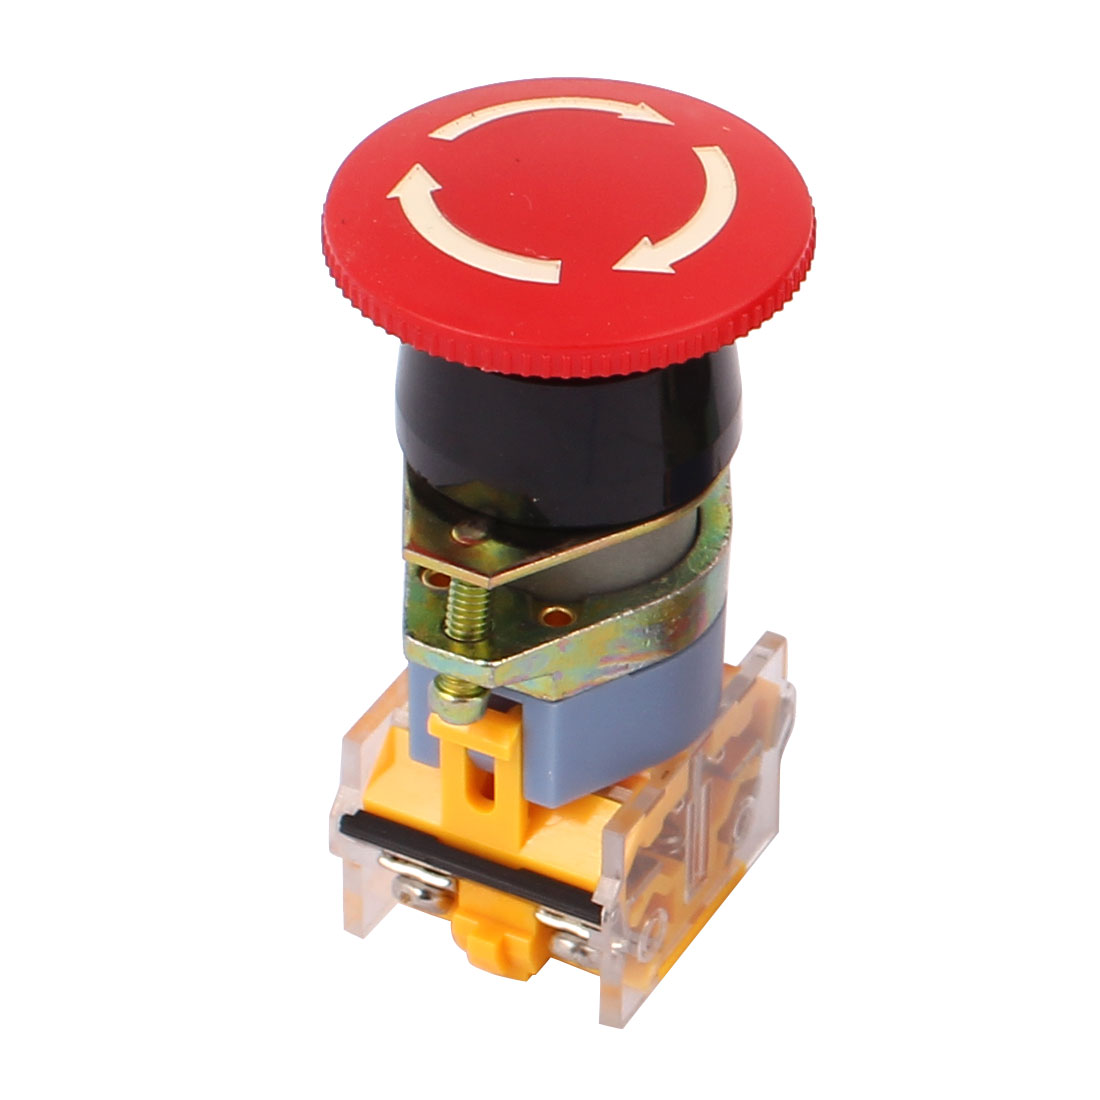 AC660V 10A 1NO 1NC DPST Self Latching Mushroom Head Emergency Stop Switch